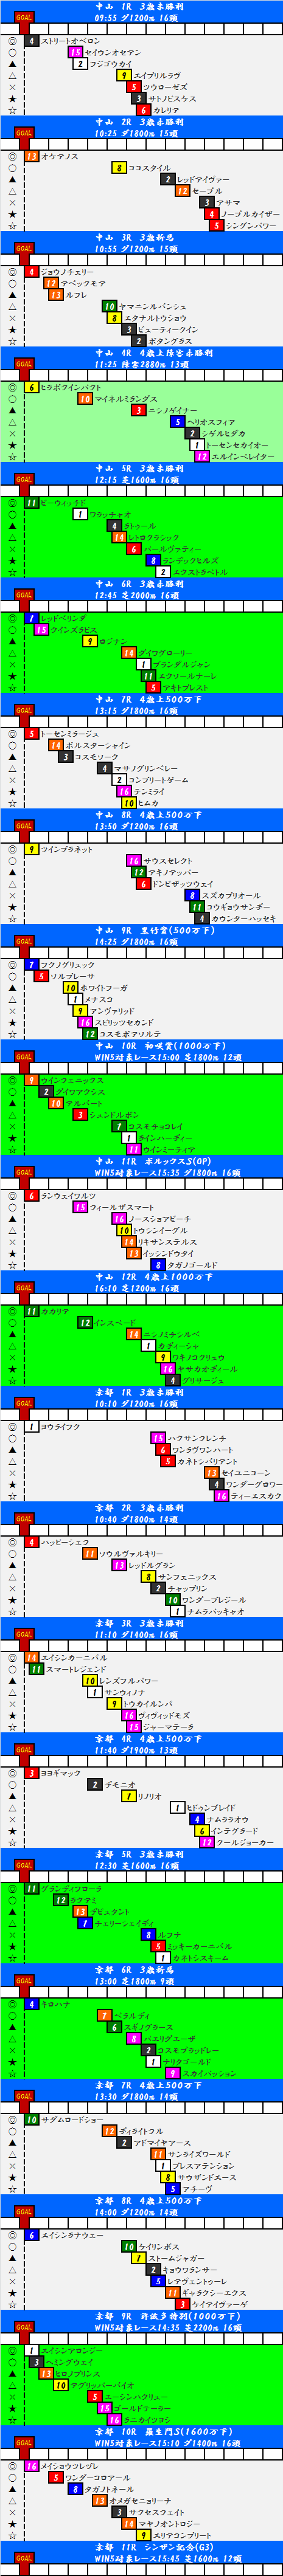 2015011101.png